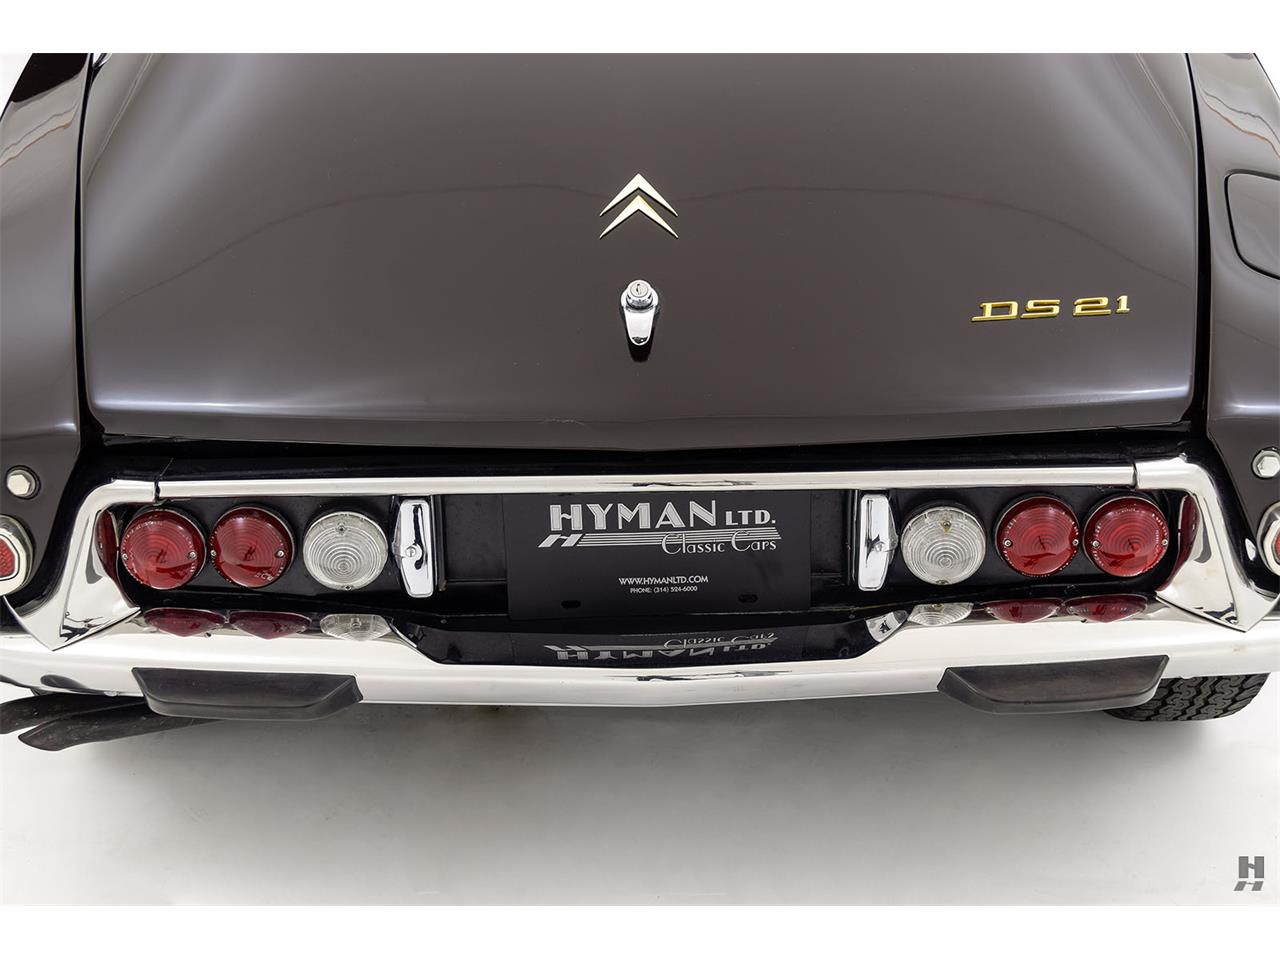 Large Picture of '69 DS21 Pallas - OVD1